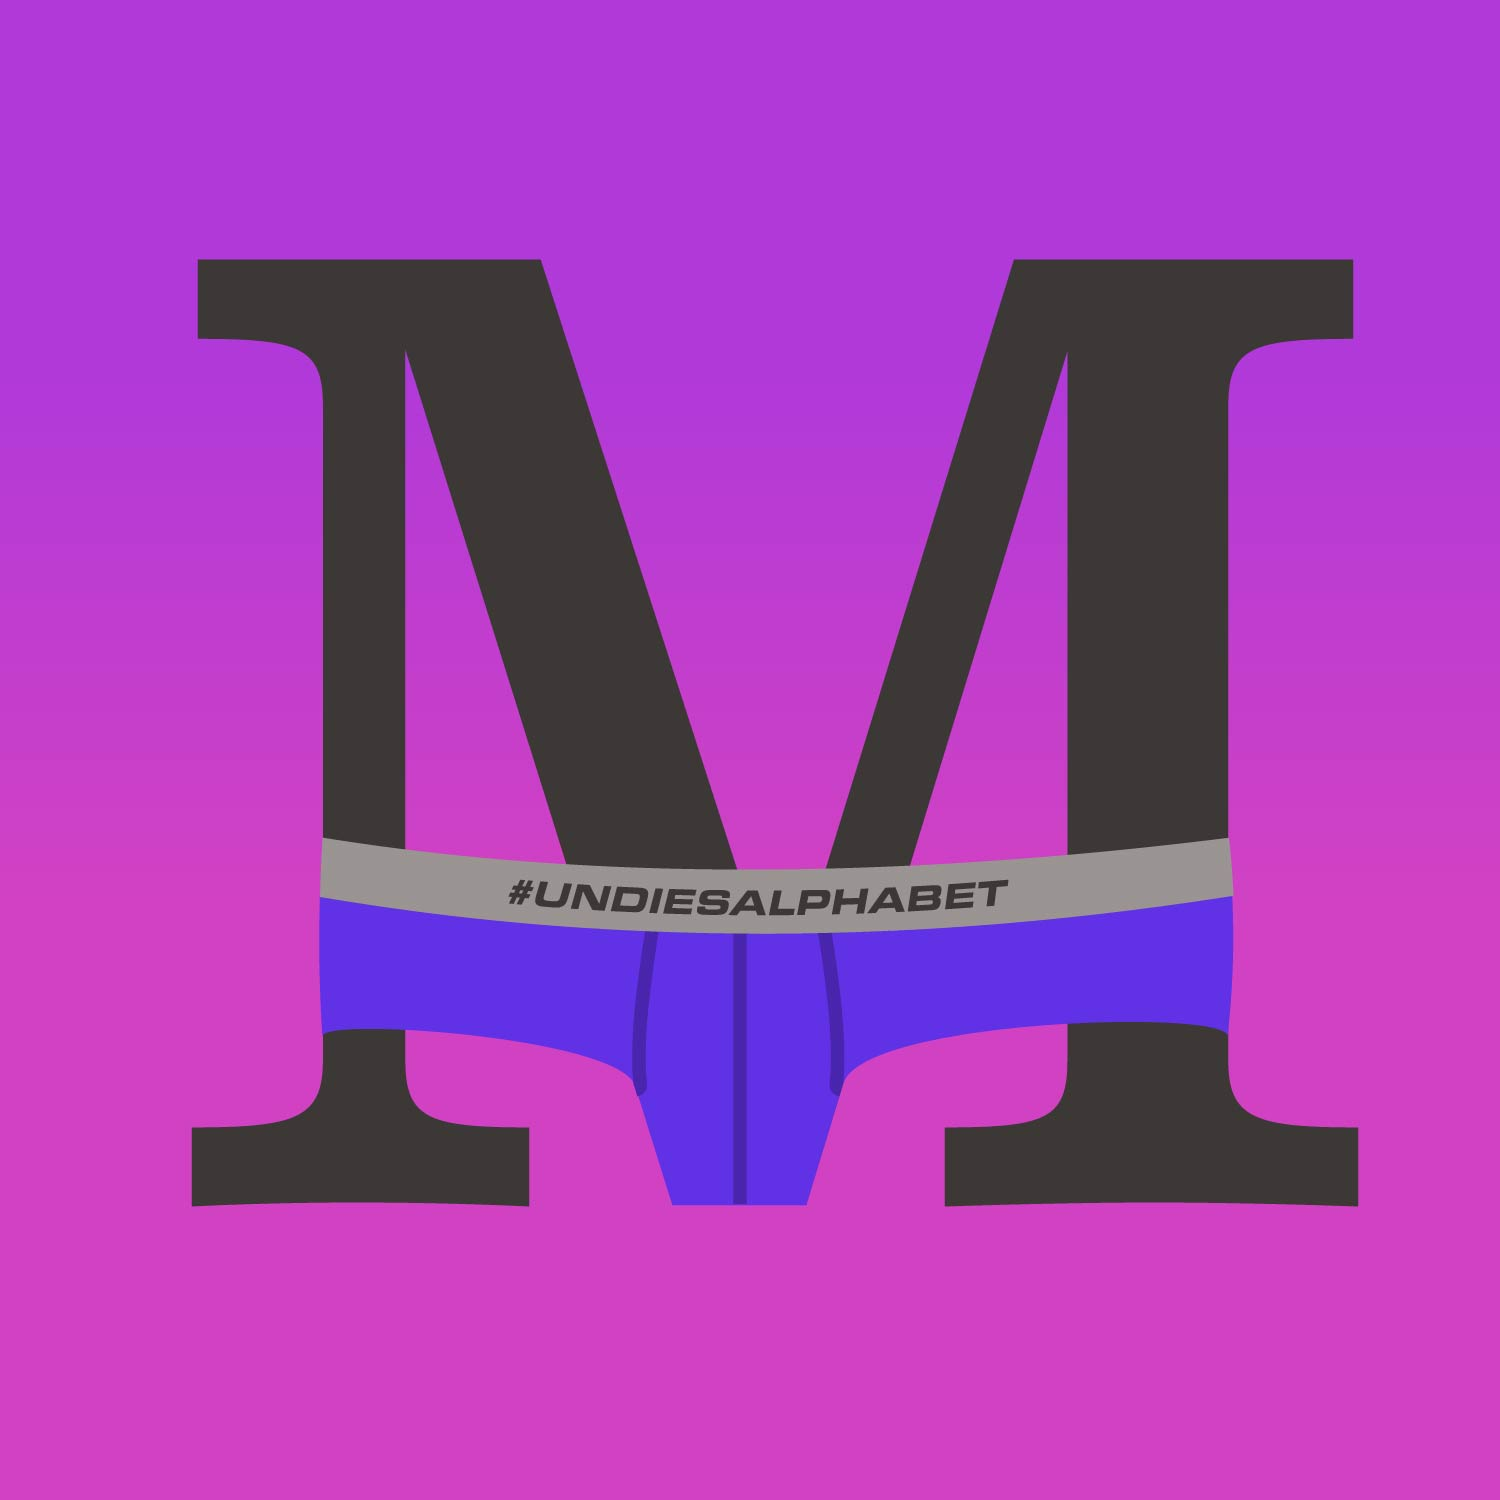 serif letter M wearing indigo colored men's briefs on a gradient background fading from purple to pink